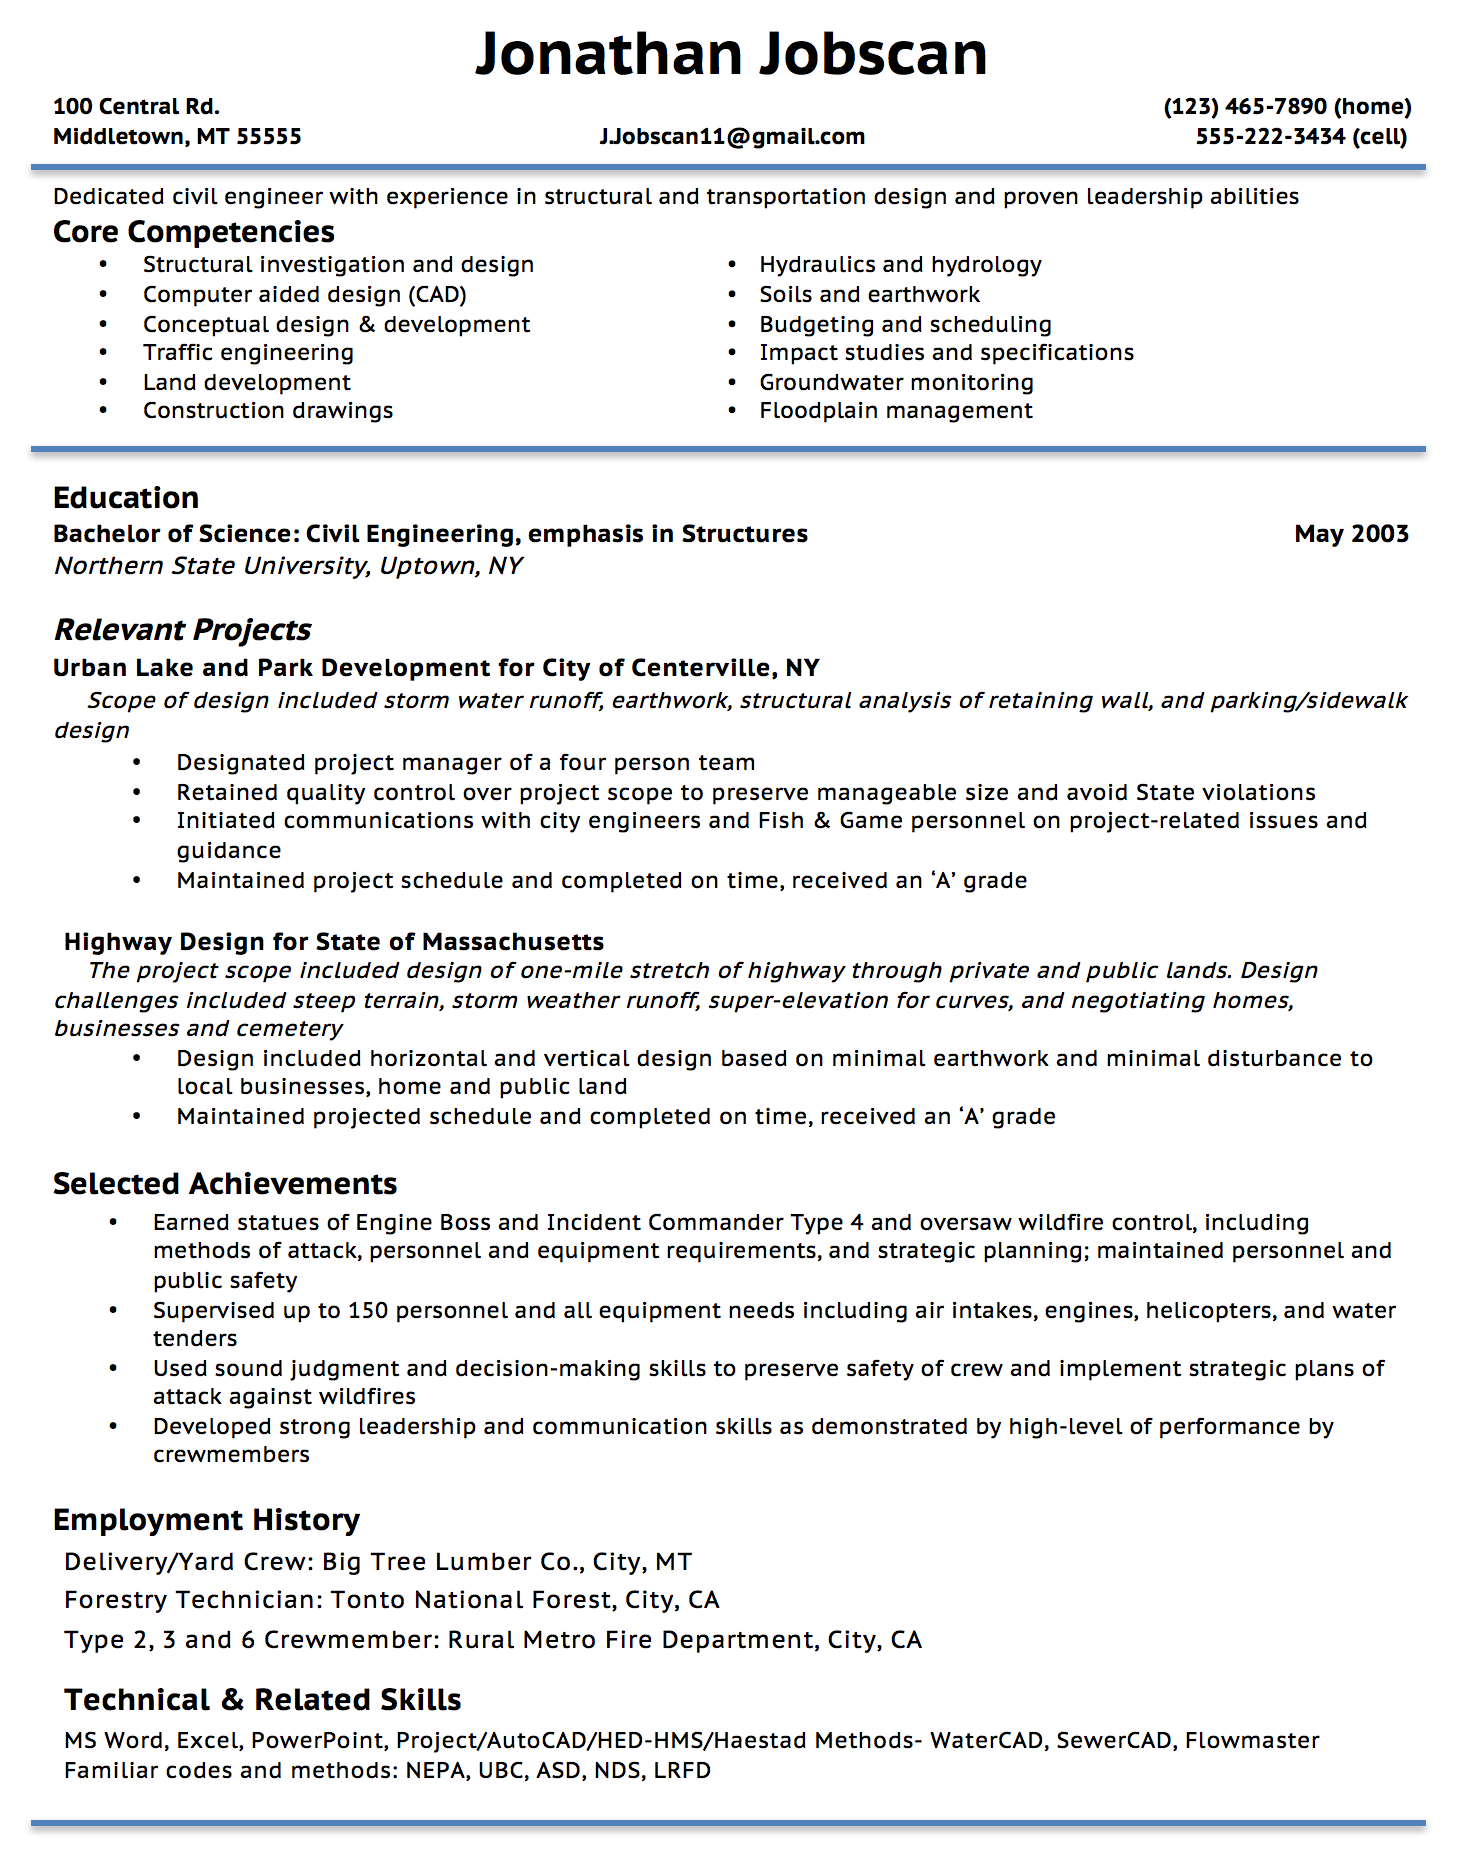 Picnictoimpeachus  Scenic Resume Writing Guide  Jobscan With Fascinating Example Of A Functional Resume Format With Alluring Babysitter Resume Skills Also Great Objective For Resume In Addition Tips For Resume Writing And Chronological Order Resume As Well As Resume Objective For Receptionist Additionally Medical Assistant Duties For Resume From Jobscanco With Picnictoimpeachus  Fascinating Resume Writing Guide  Jobscan With Alluring Example Of A Functional Resume Format And Scenic Babysitter Resume Skills Also Great Objective For Resume In Addition Tips For Resume Writing From Jobscanco